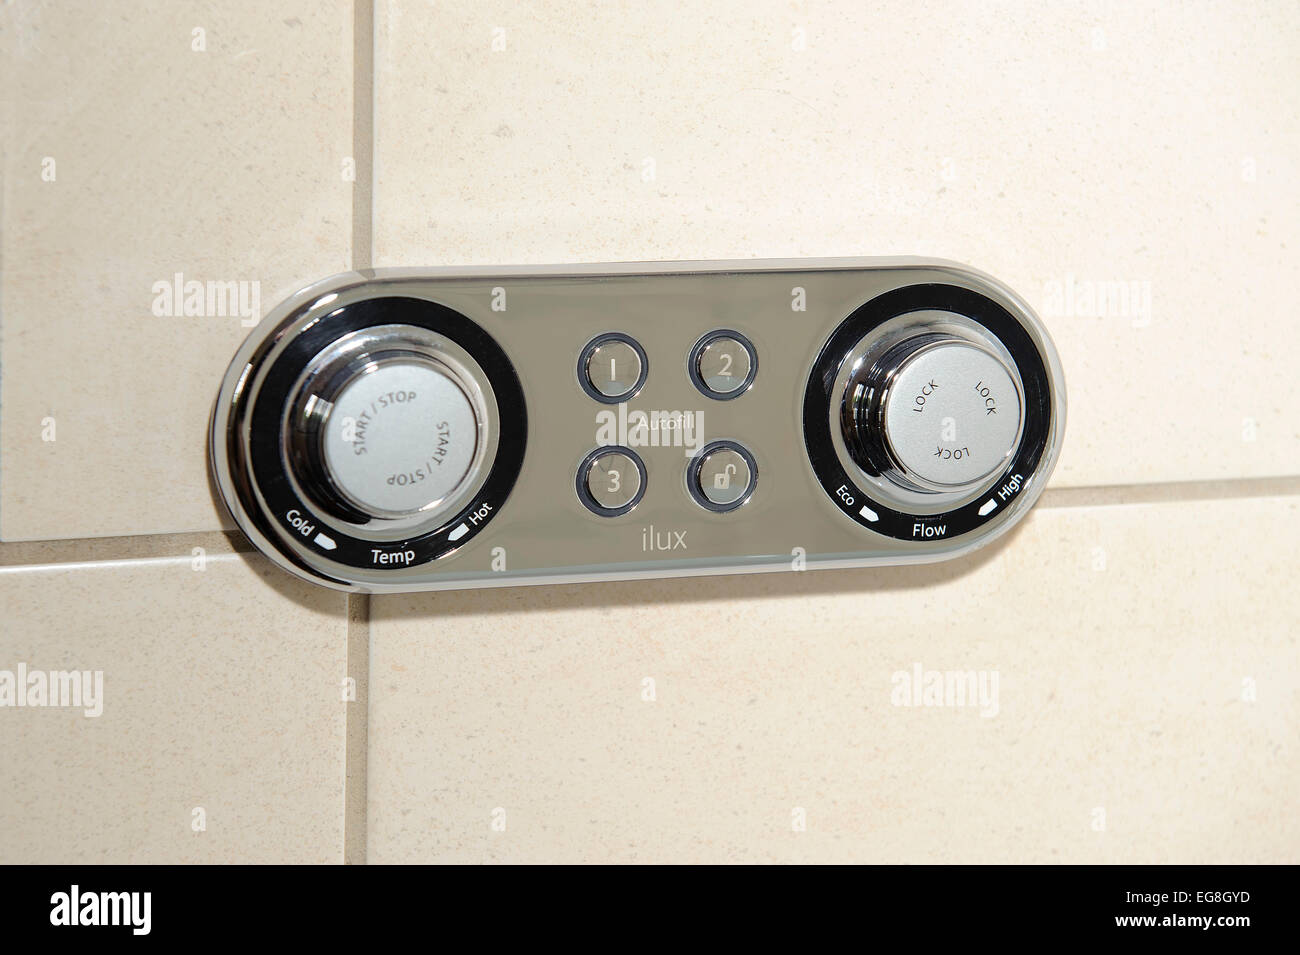 electronic bath fill and temperature control - Stock Image